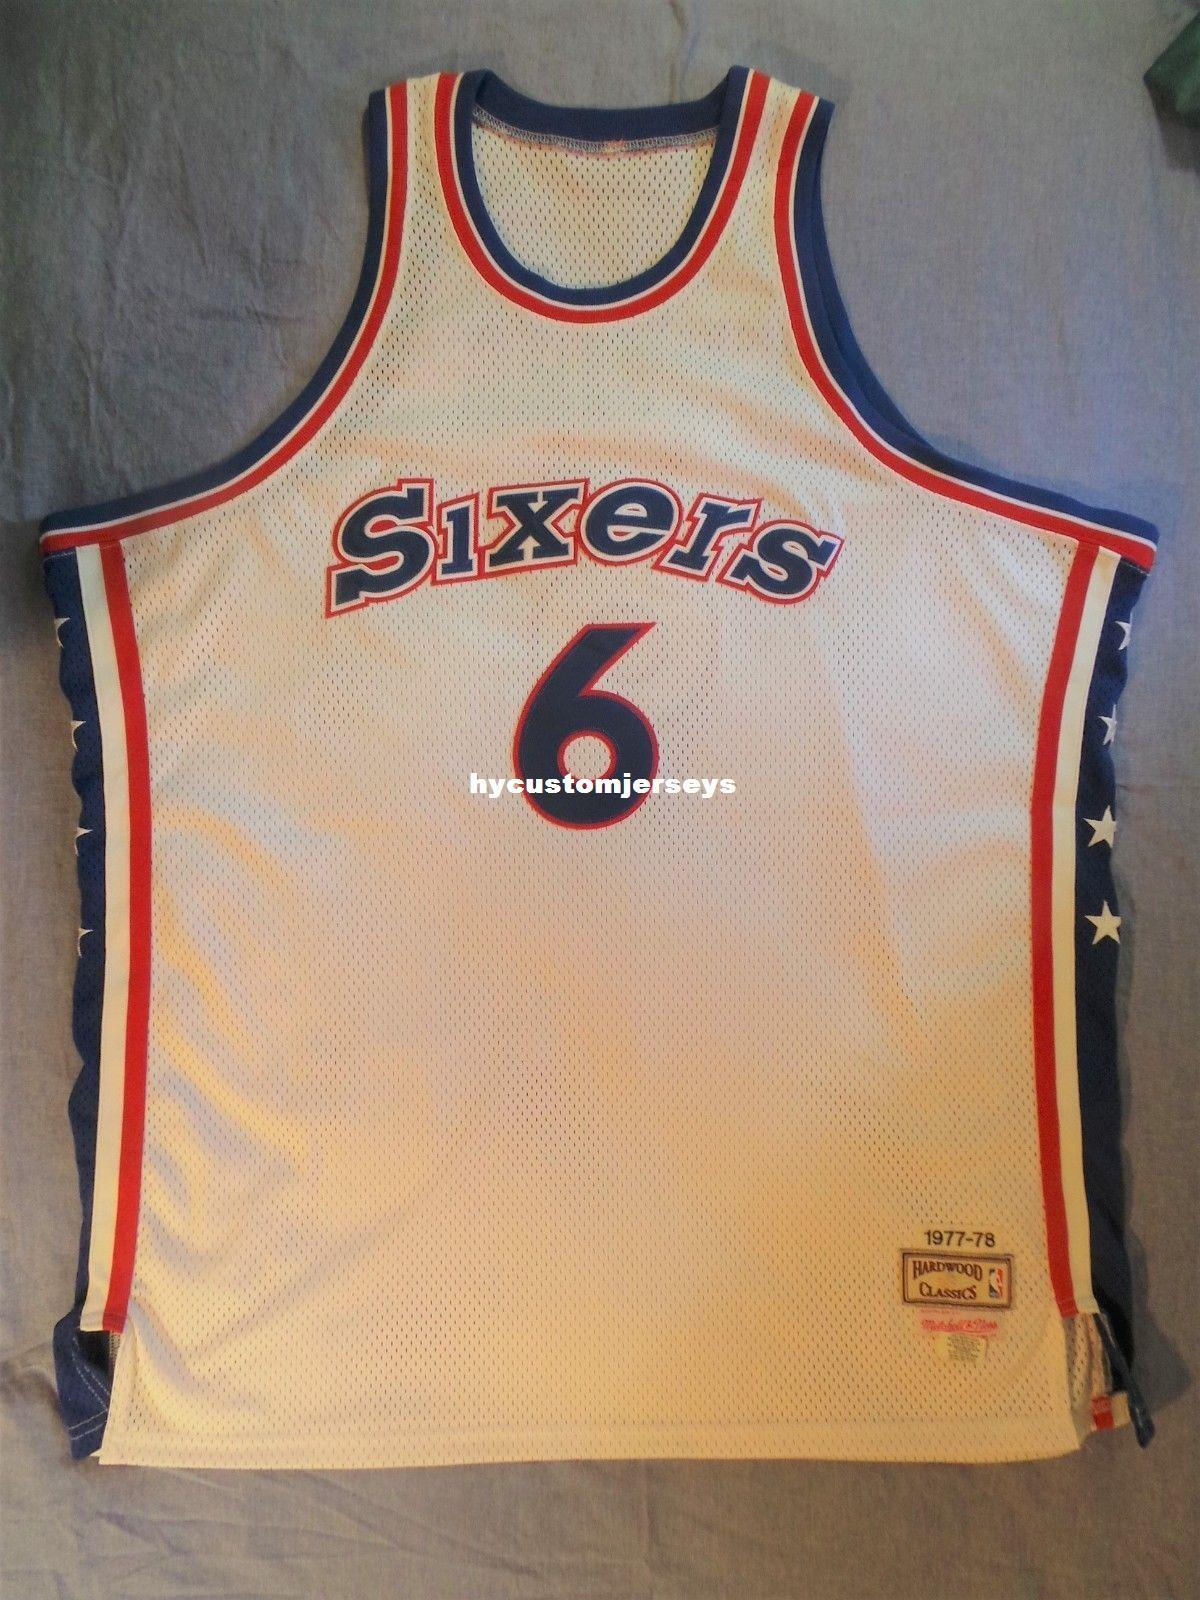 official photos 5a254 f6f22 Mitchell Ness M&N Sewn #6 Julius Dr J Erving Jersey Mens Vest Size XS-6XL  Stitched basketball Jerseys Ncaa